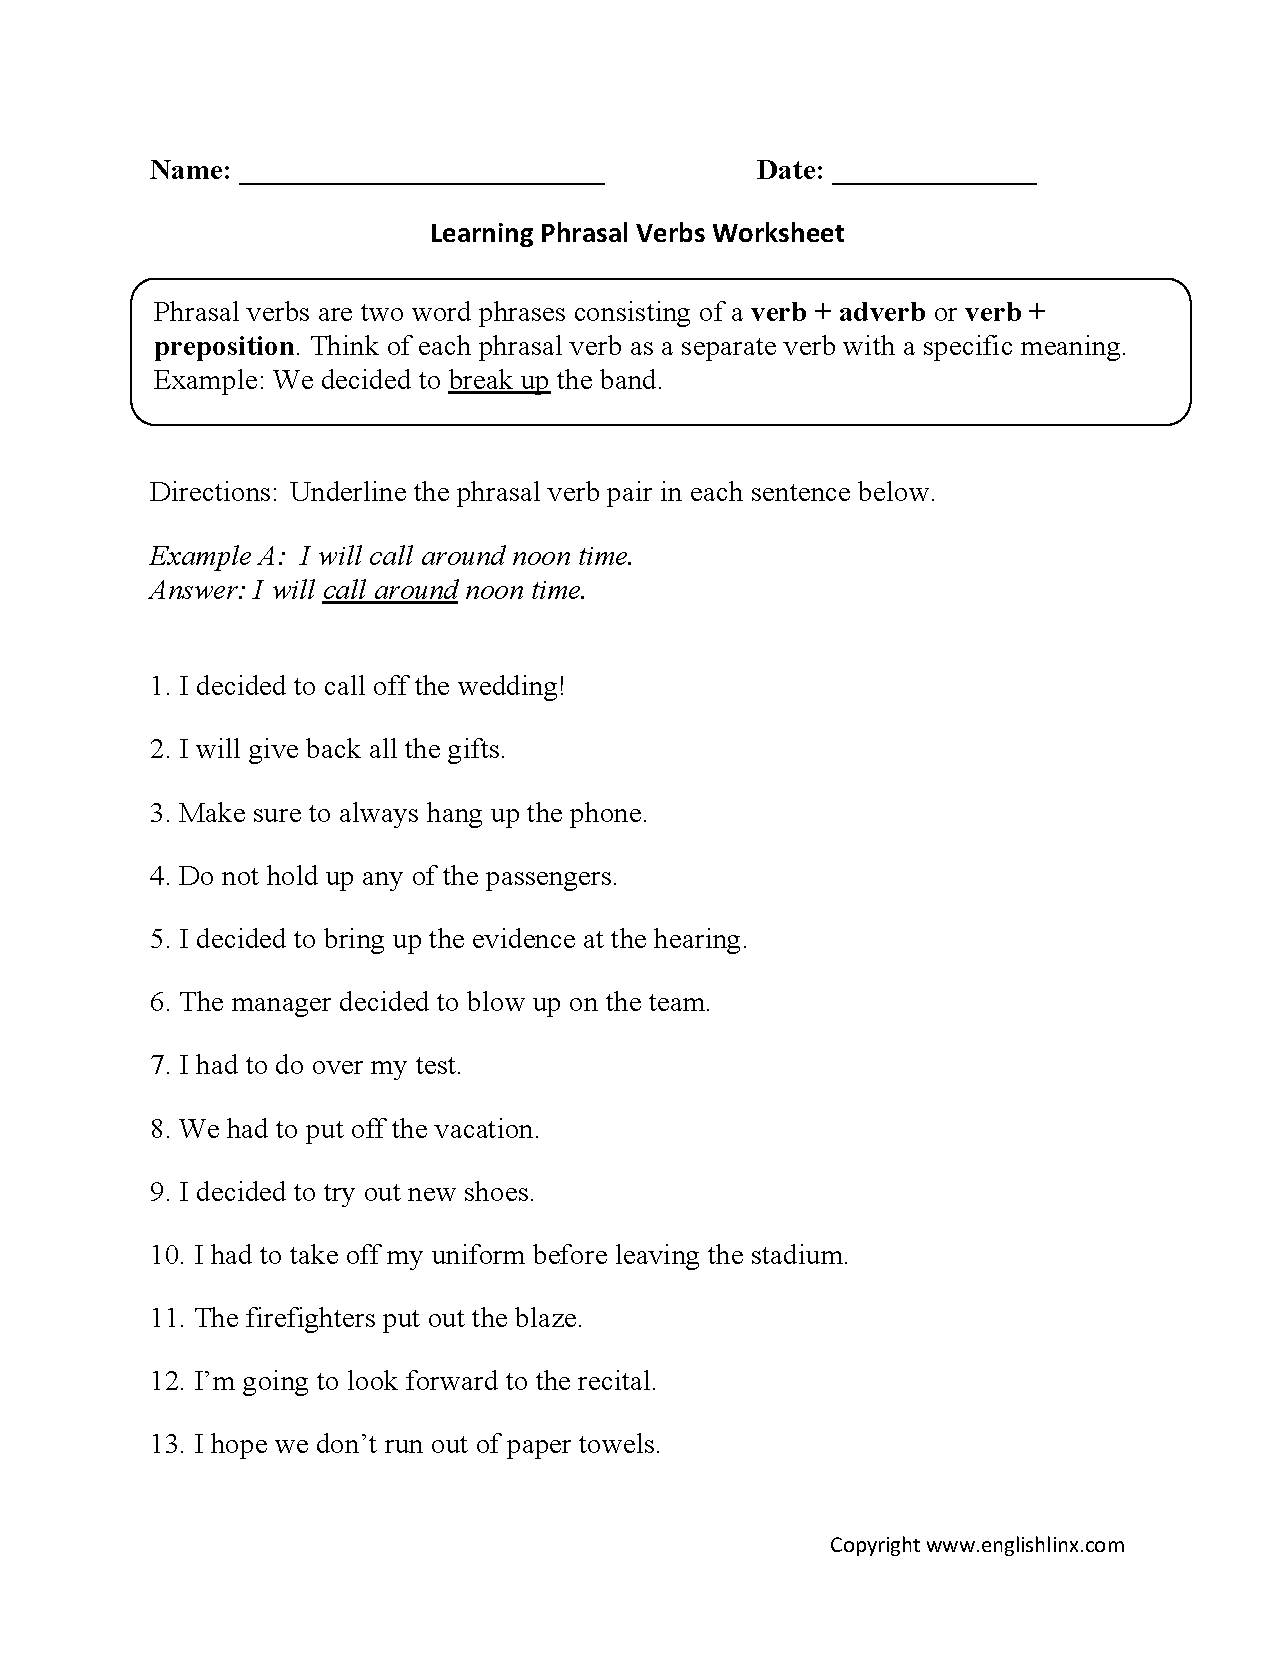 Englishlinx – Irregular Past Tense Verbs Worksheet